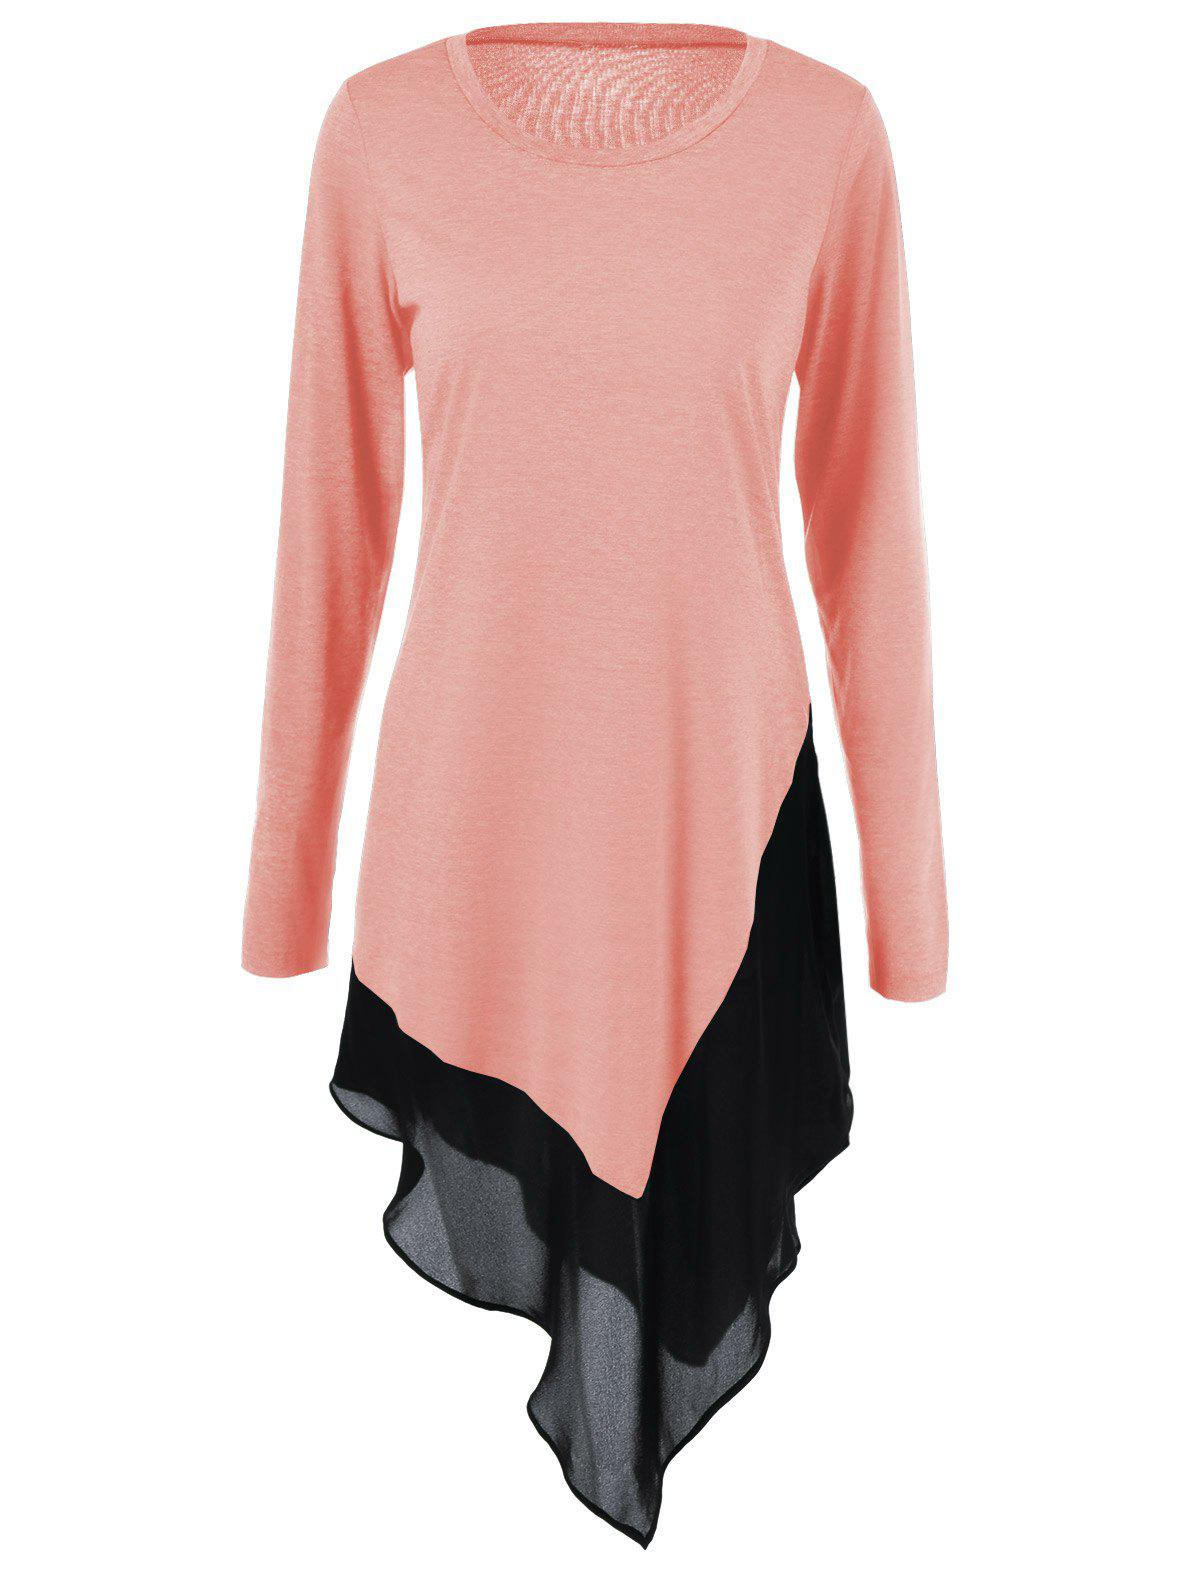 Chiffon Trim Asymmetrical Long BlouseWOMEN<br><br>Size: M; Color: ORANGEPINK; Style: Fashion; Material: Polyester,Spandex; Shirt Length: Long; Sleeve Length: Full; Collar: Scoop Neck; Pattern Type: Solid; Season: Fall,Spring; Weight: 0.3900kg; Package Contents: 1 x Blouse;